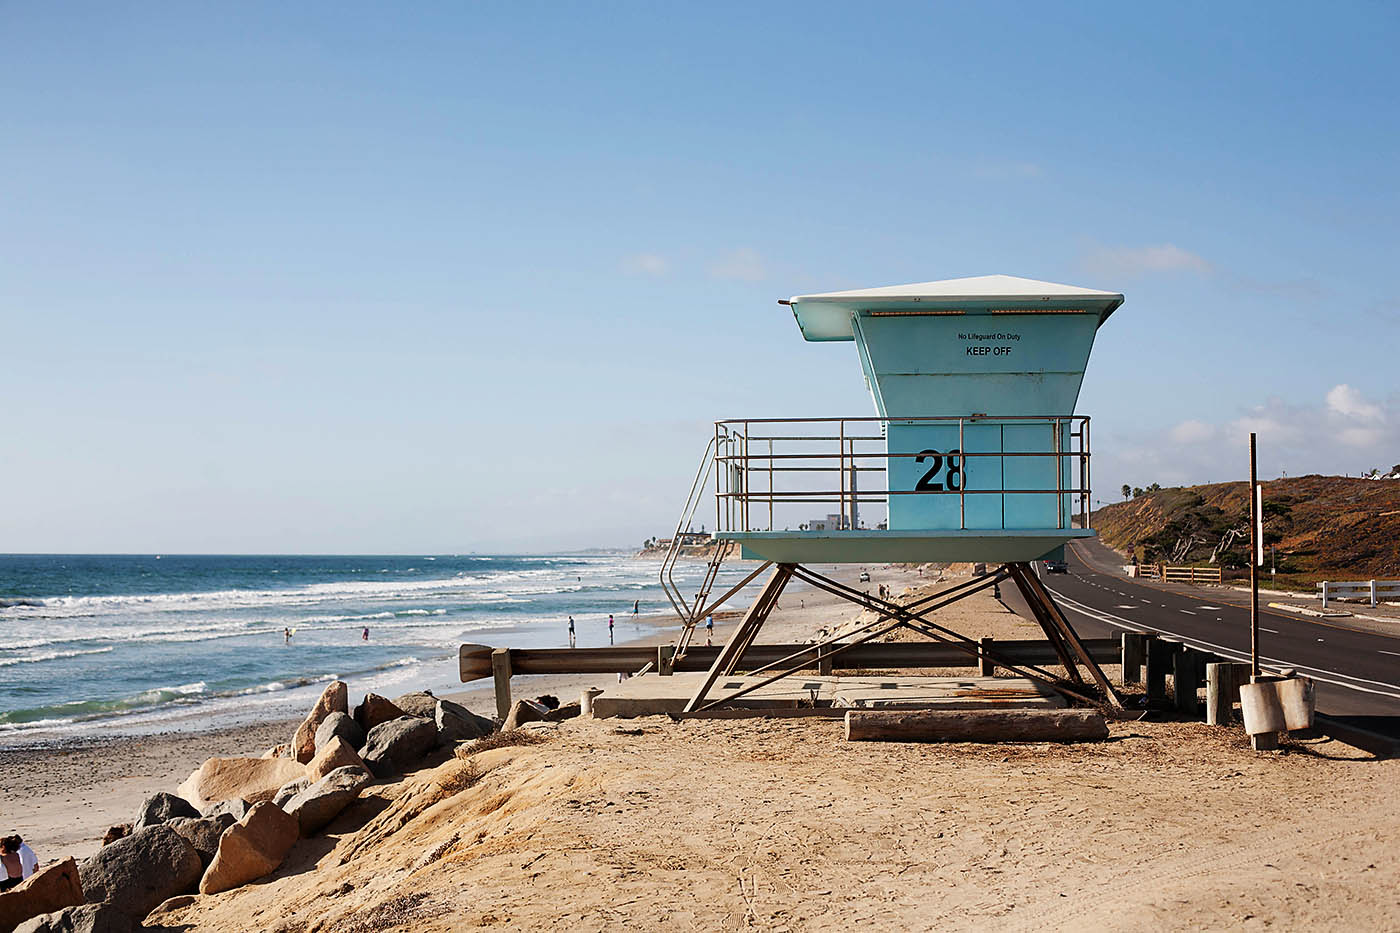 Travel to Carlsbad + 20% off a ResorTime vacation